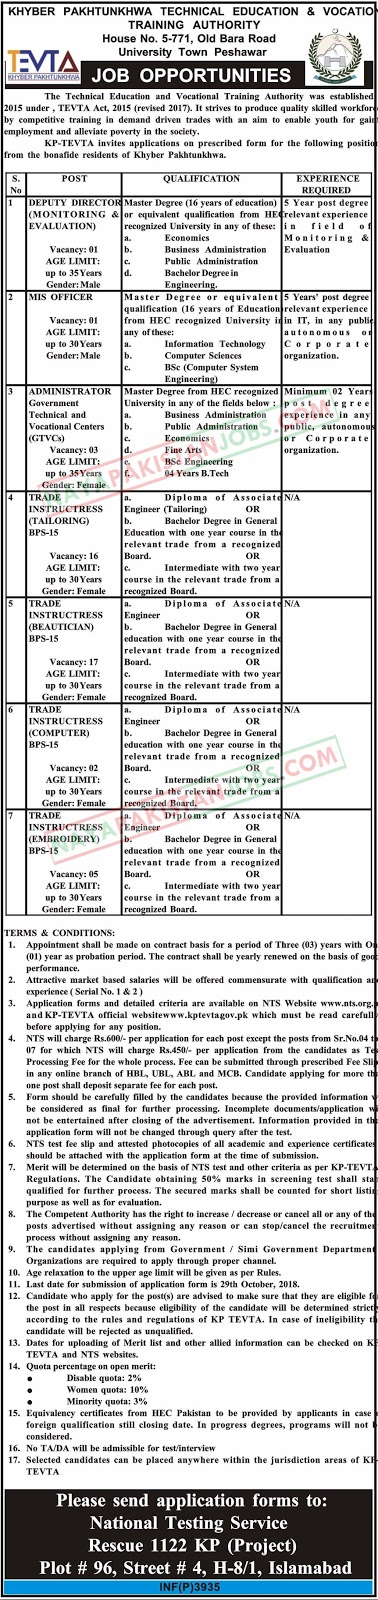 Latest Vacancies Announced in KHYBER PAKHTUNKHWA Technical Education And Vocational Training Authority TEVTA Jobs By NTS 14 Oct 201823 October 2018 - Naya Pakistan